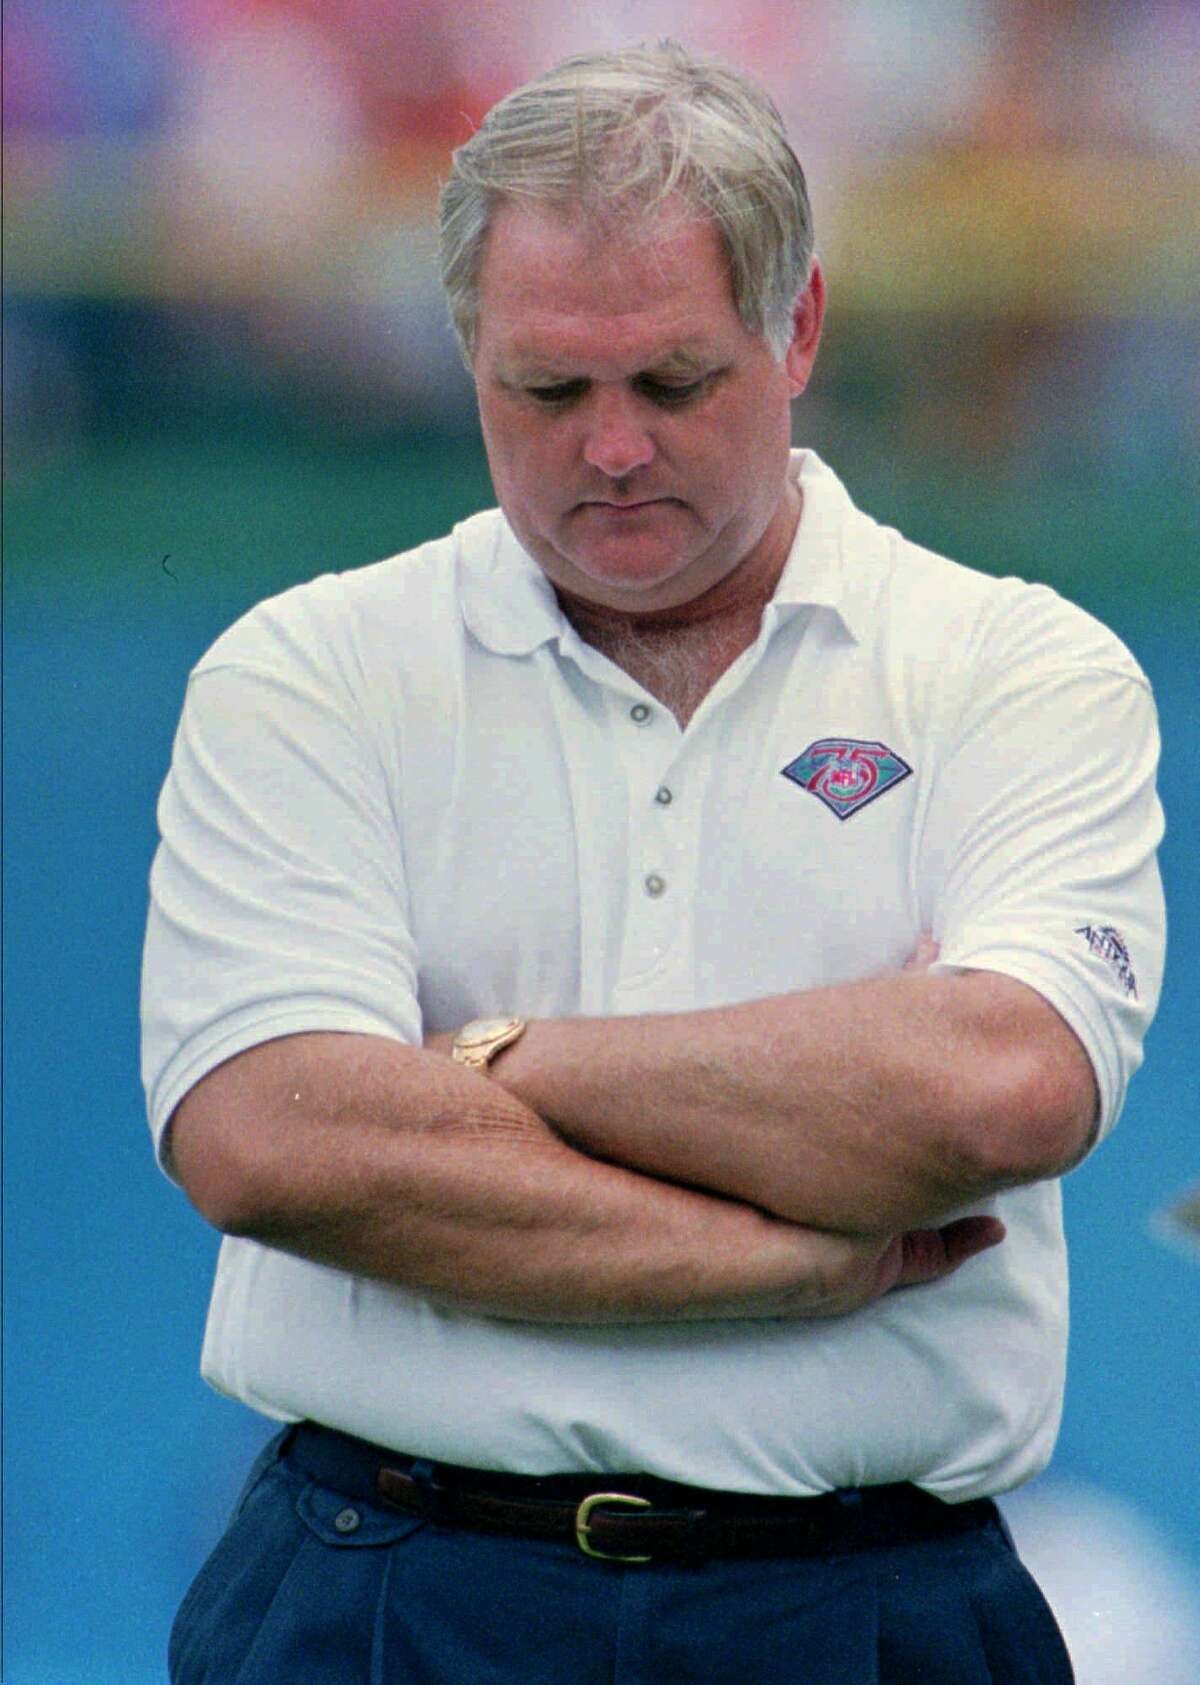 FILE--Head bowed and arms akimbo, Denver Broncos head coach Wade Phillips walks the sideline during his team's 48-16 drubbing at the hands of the Los Angeles Raiders Sunday, Sept. 18, 1994, in Denver's Mile High Stadium. The Broncos fired Phillips on Thursday, Dec. 29, after two seasons as head coach. (AP Photo/David Zalubowski)